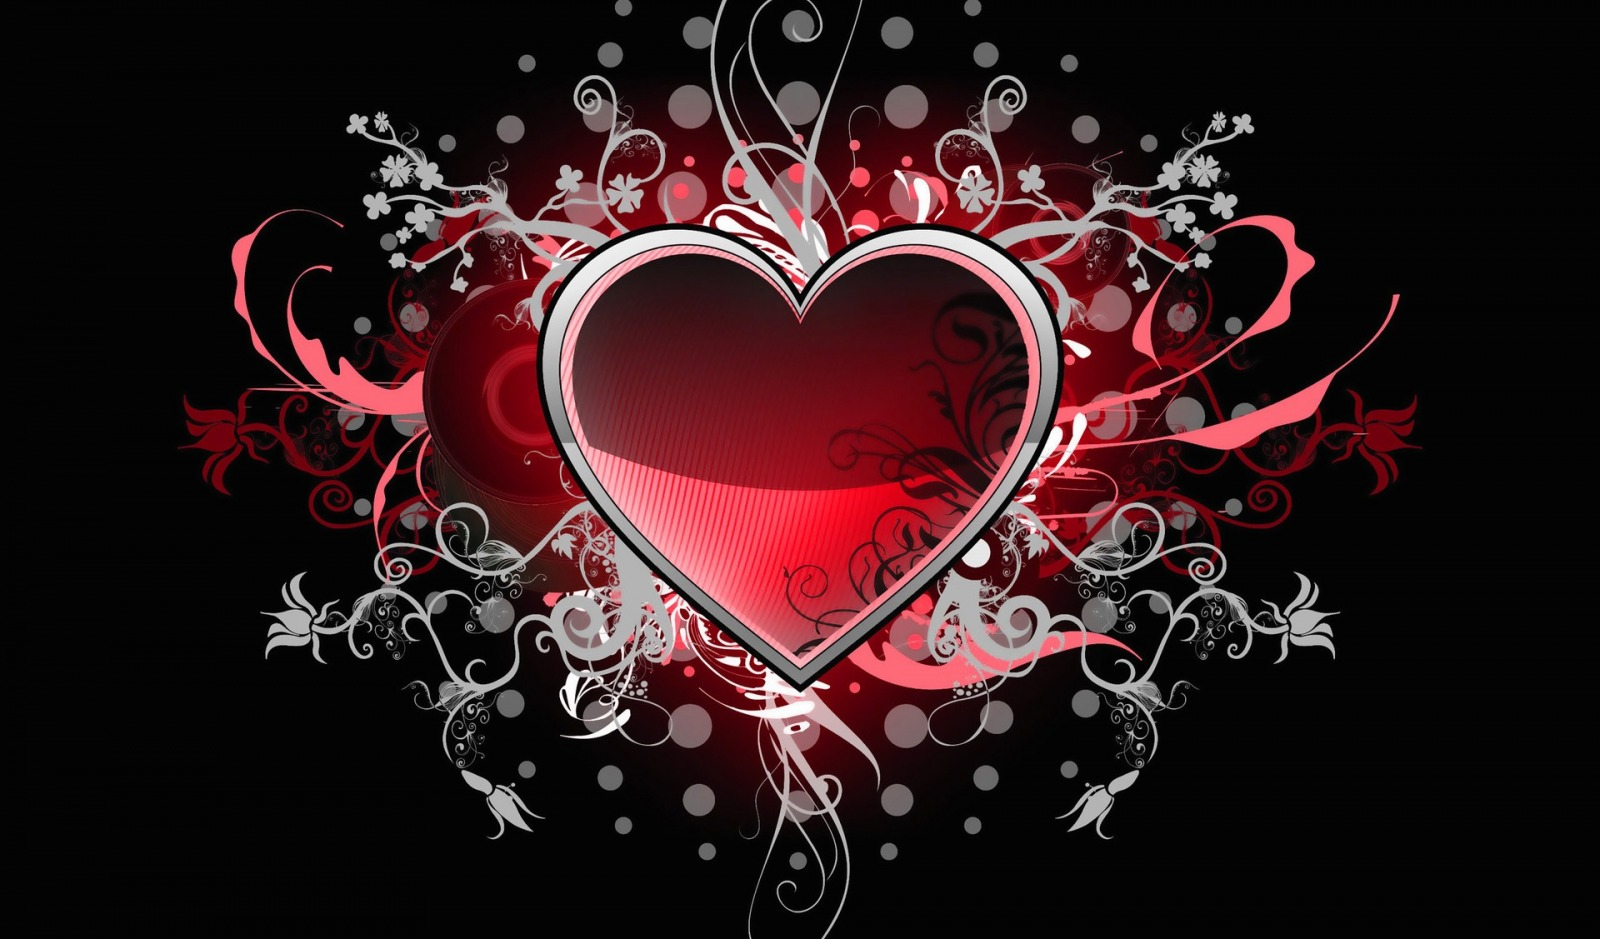 Best Love Wallpaper Sites : create custom Homepage, Backgrounds And Themes! Like ...